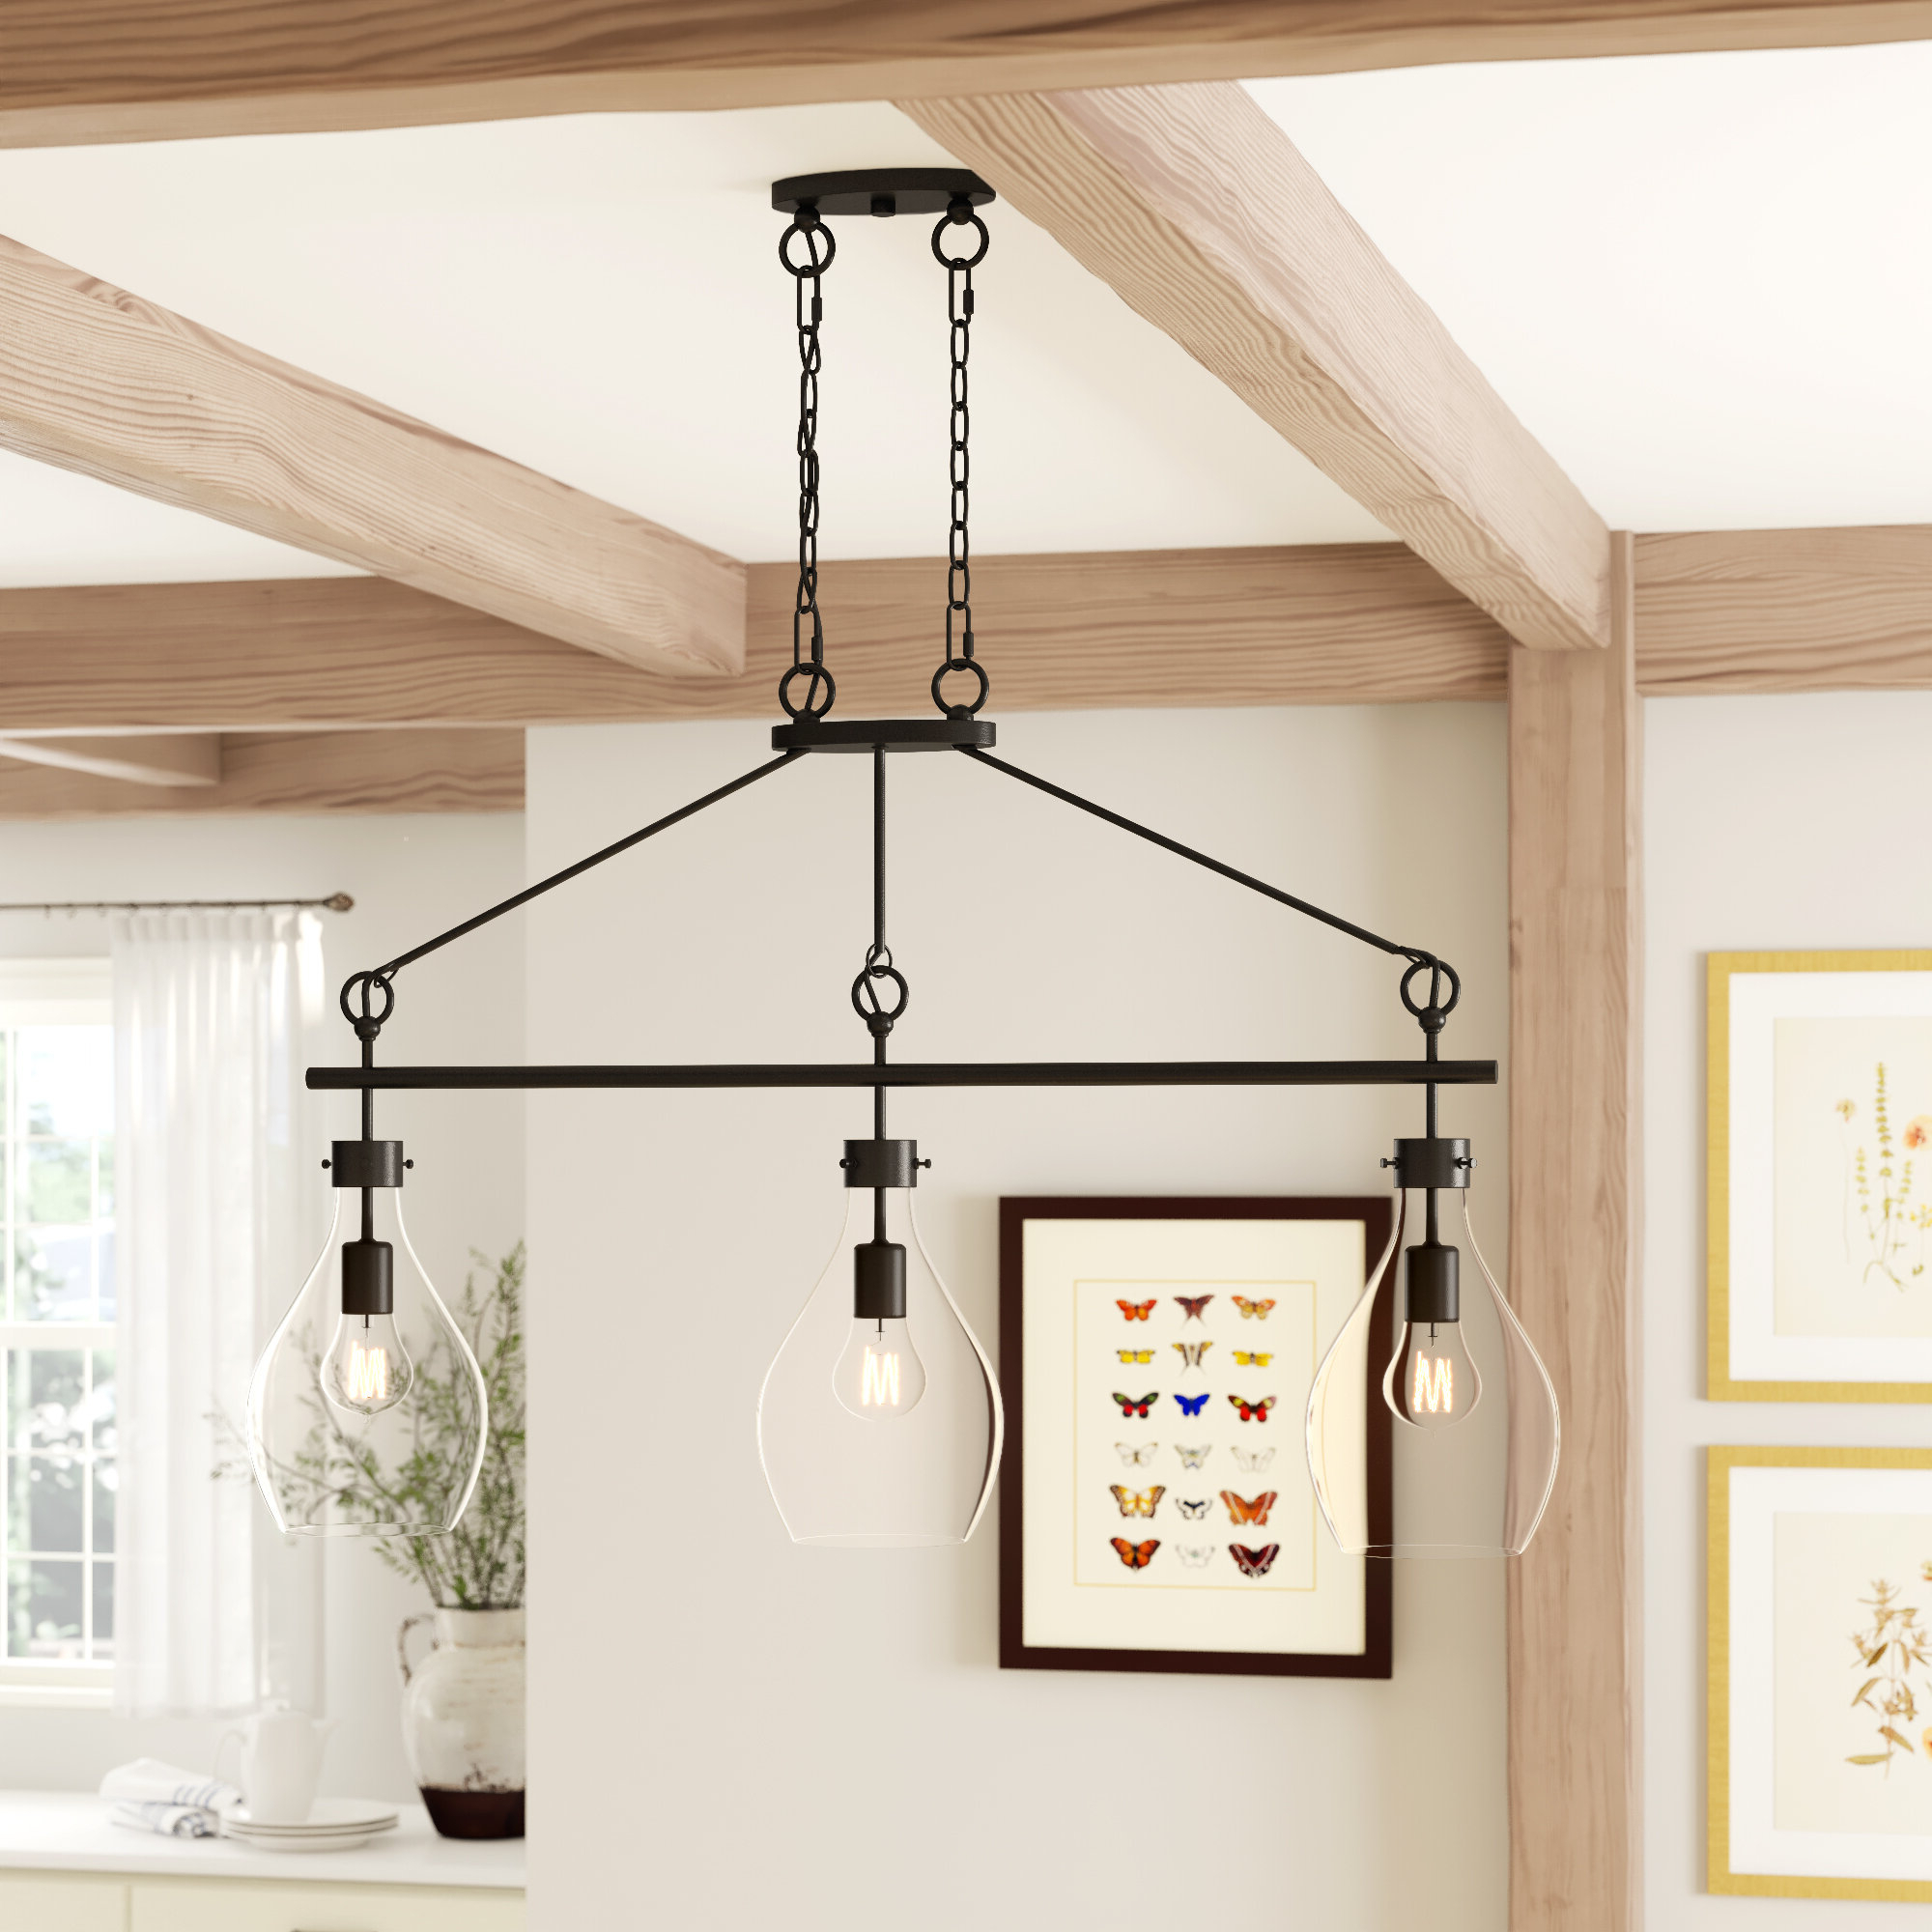 Ariel 2 Light Kitchen Island Dome Pendants With Well Known Nan 3 Light Kitchen Island Teardrop Pendant (Gallery 15 of 20)